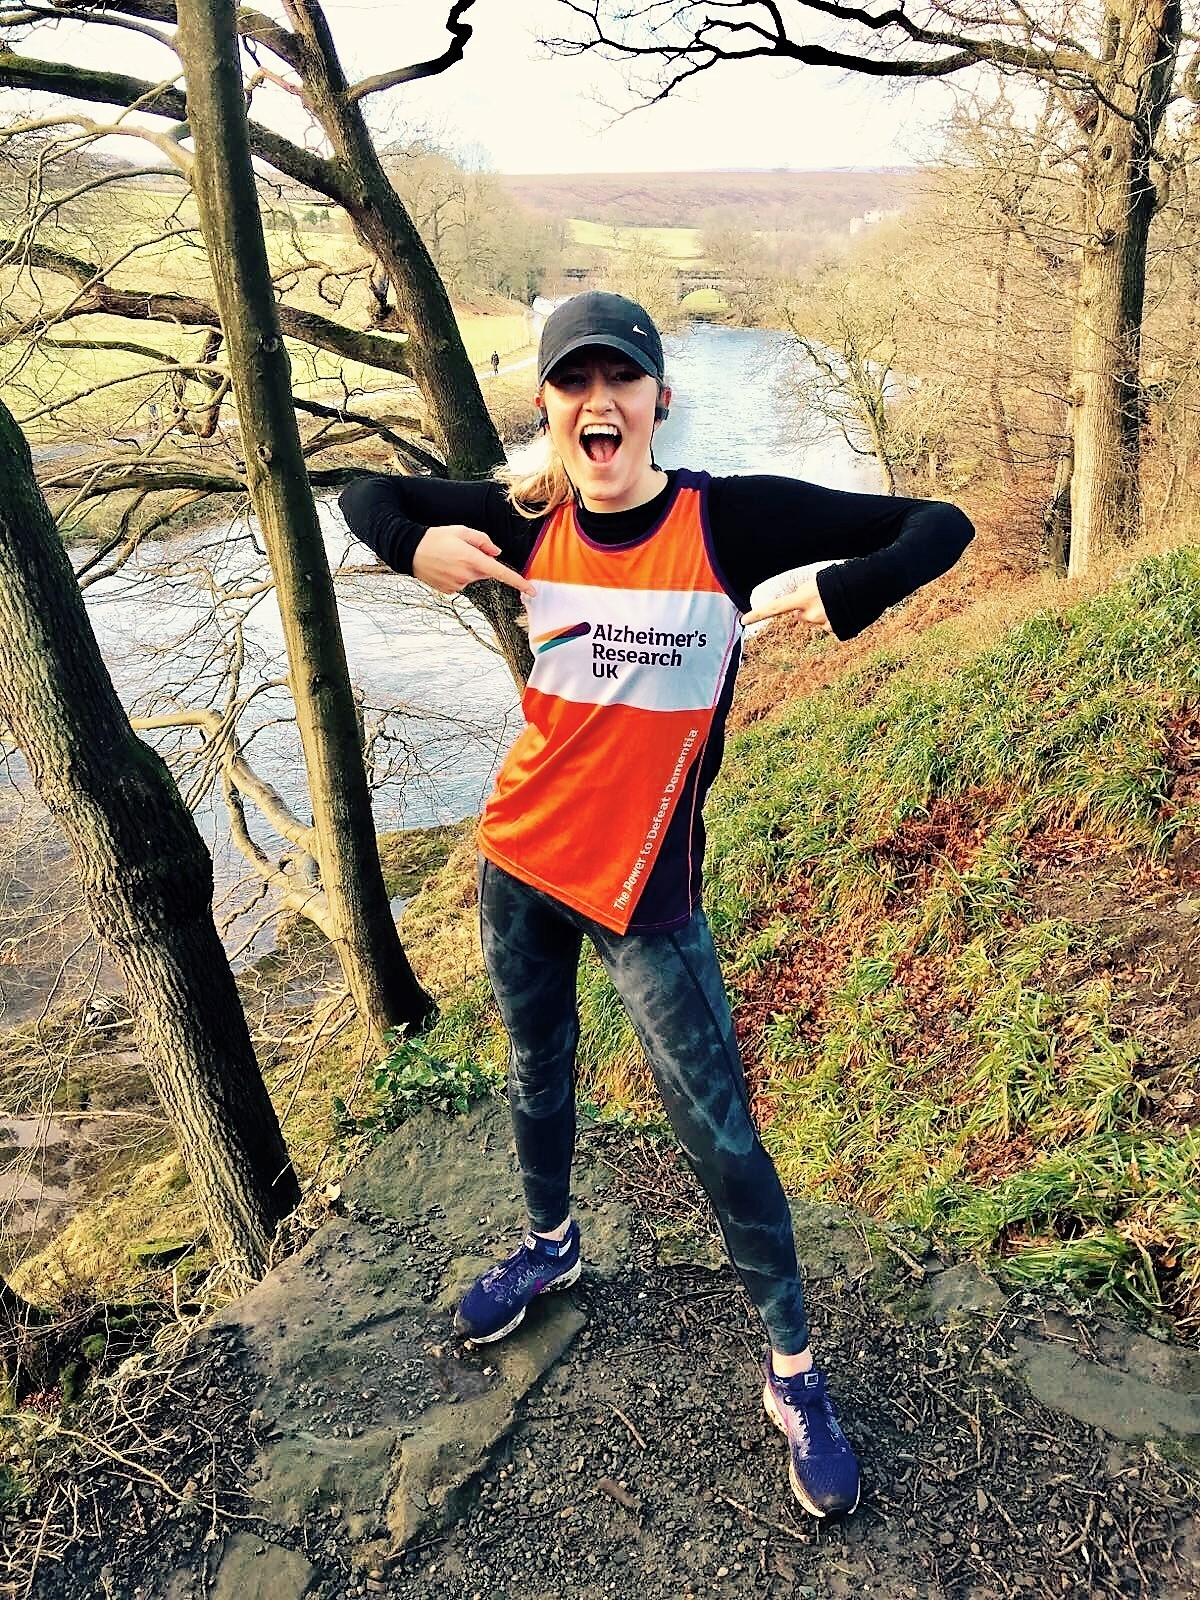 Running in two marathons for Alzheimer's Research UK - Fiona Connor